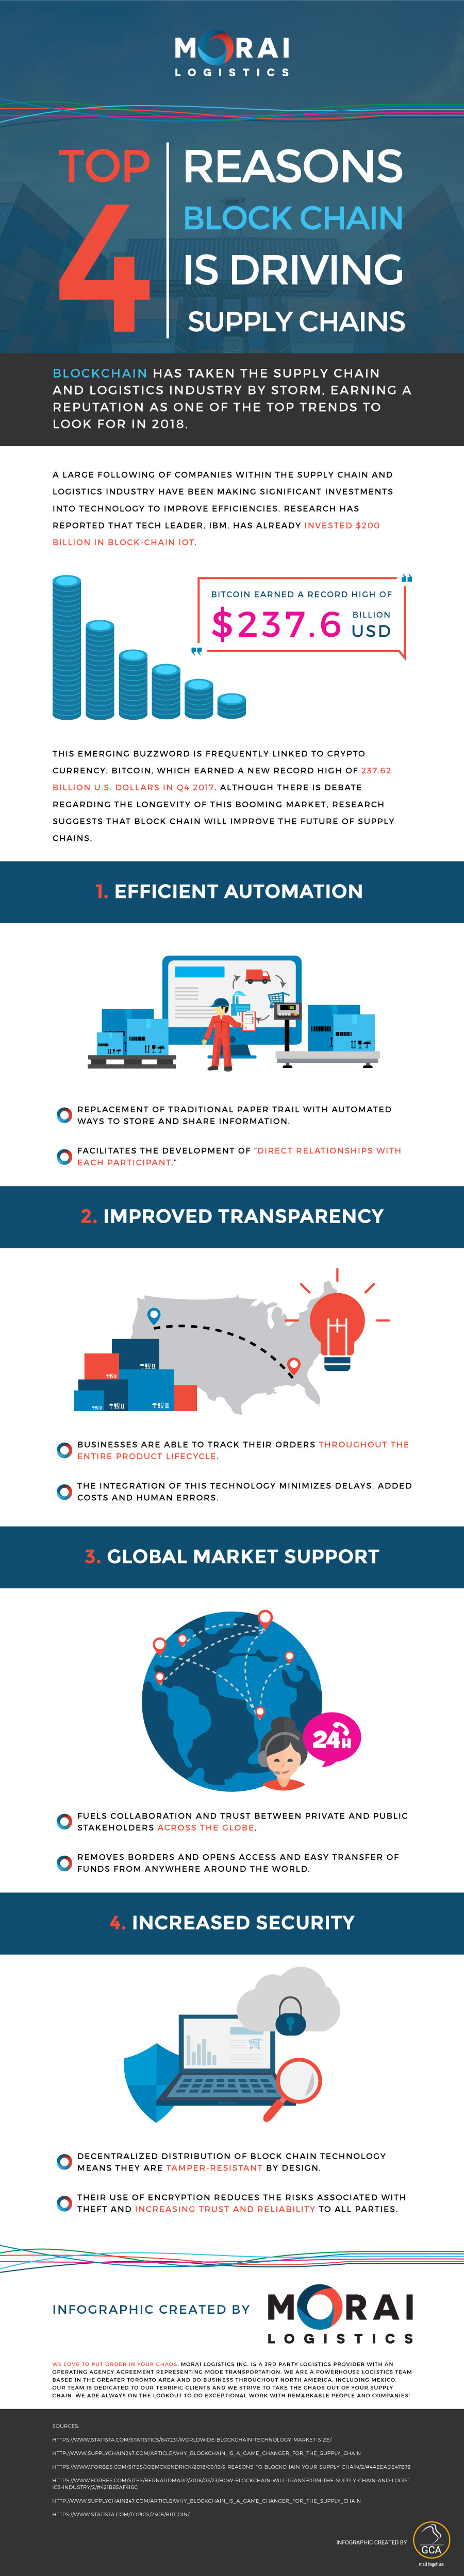 morai-infographic-4-reasons-blockchain-driving-supply-chain